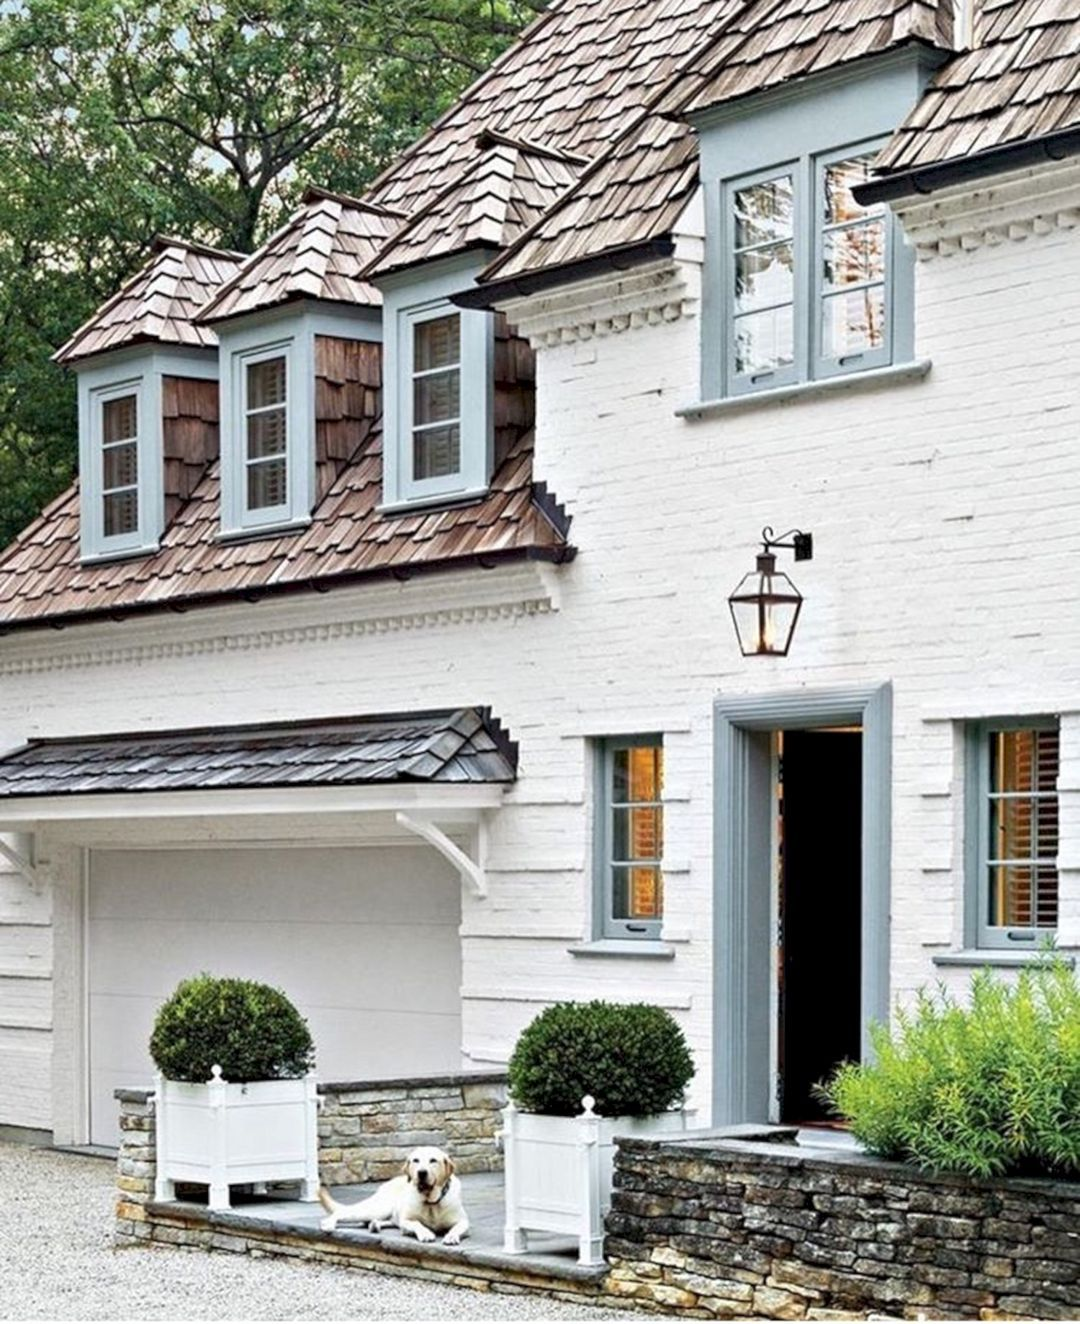 Best Ideas French Country Style Home Designs 17 | French country ...